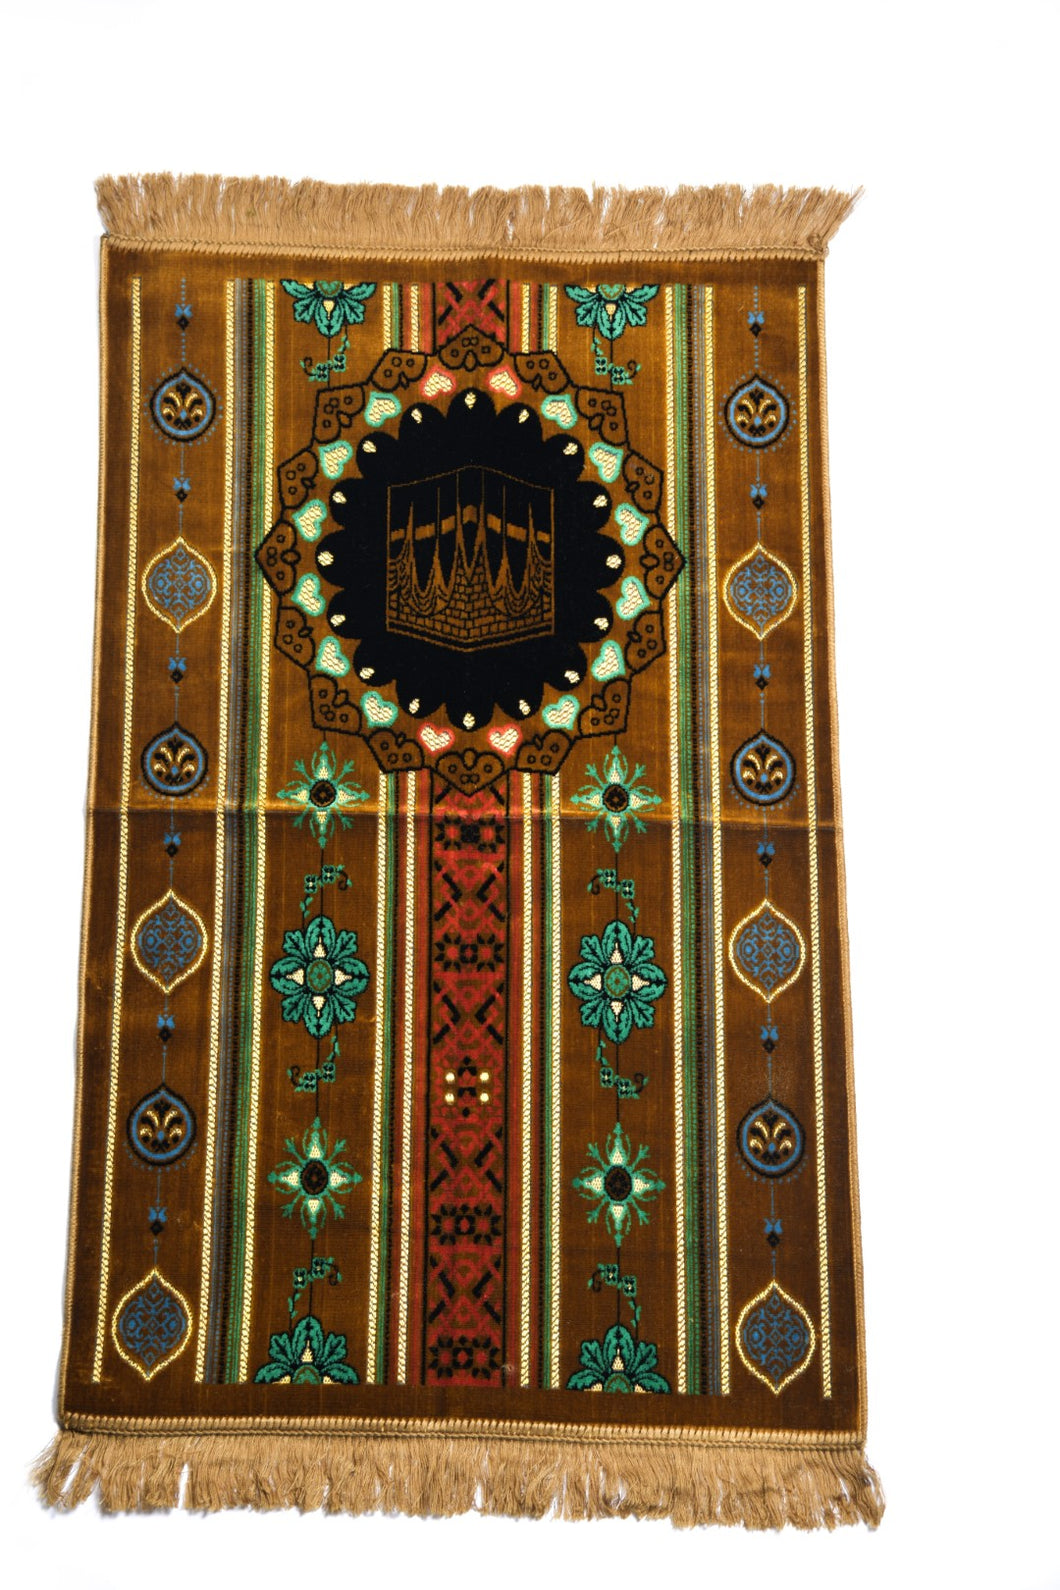 Al Arabia Muslim Prayer Rug - Made from Embossed Velvet - Features Kaaba Design & Fringes On Both Sides - Portable Islamic Prayer Mat - Perfect Gift for Ramadan & Special Occasions, 44 x 27